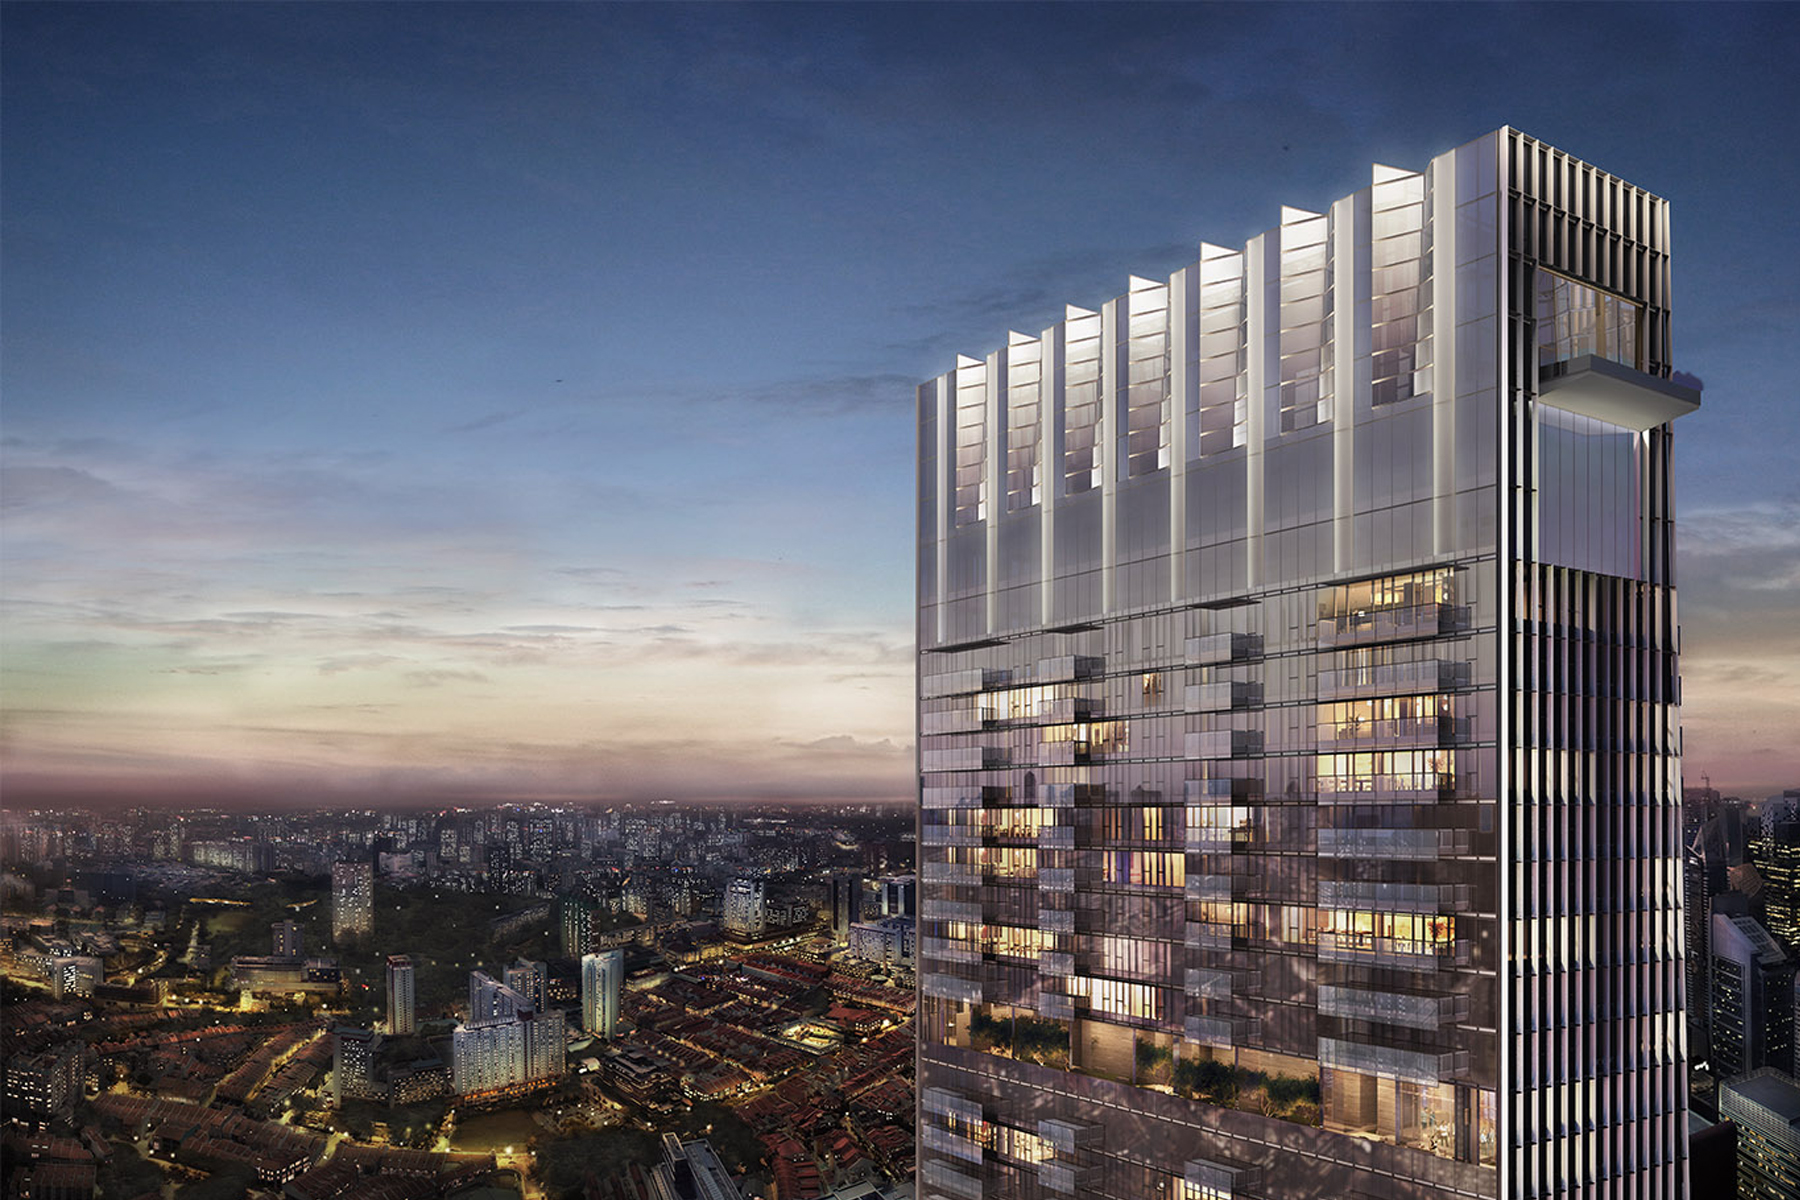 Кондоминиум для того Продажа на The Wallich Residence Super Penthouse 3 Wallich Street (Super Penthouse) Singapore, 078882 Сингапур